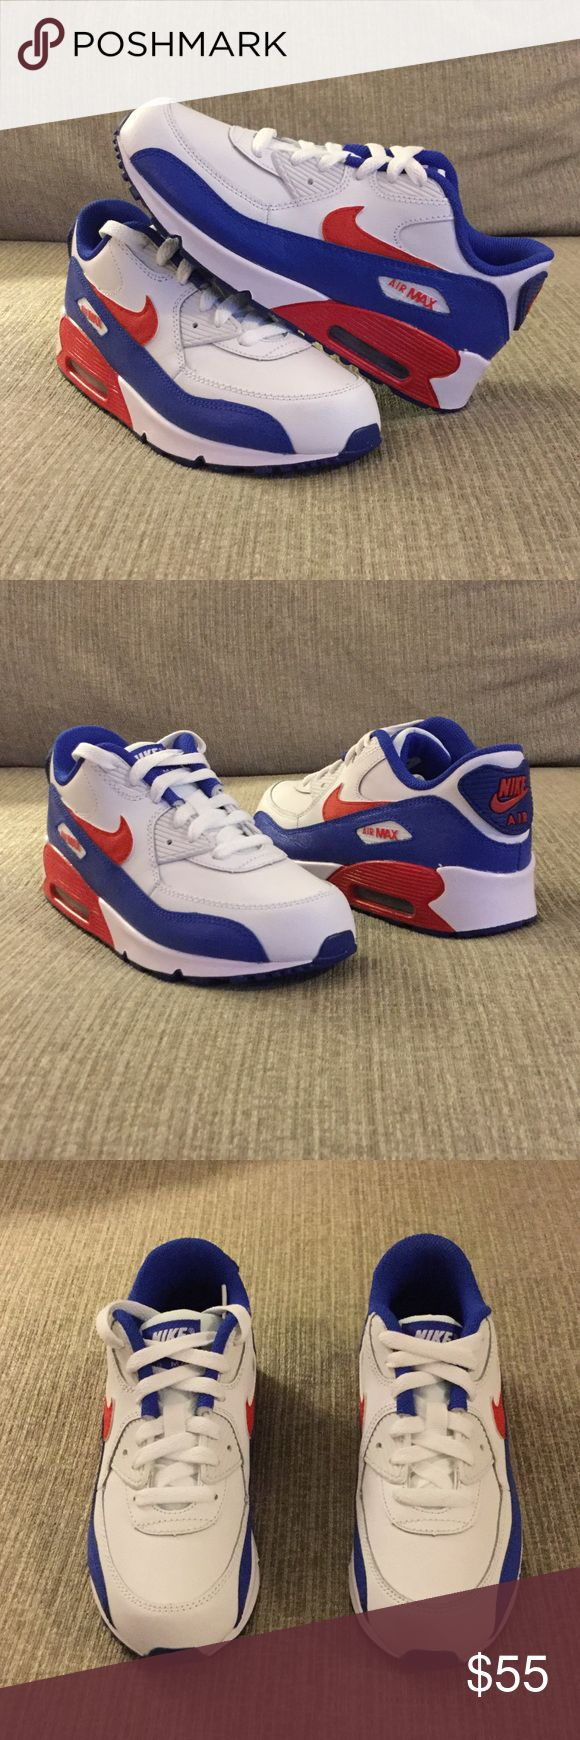 Nike Air Max 90 LTR-  kids Nike Air Max 90 LTR new in box Nike Shoes Sneakers